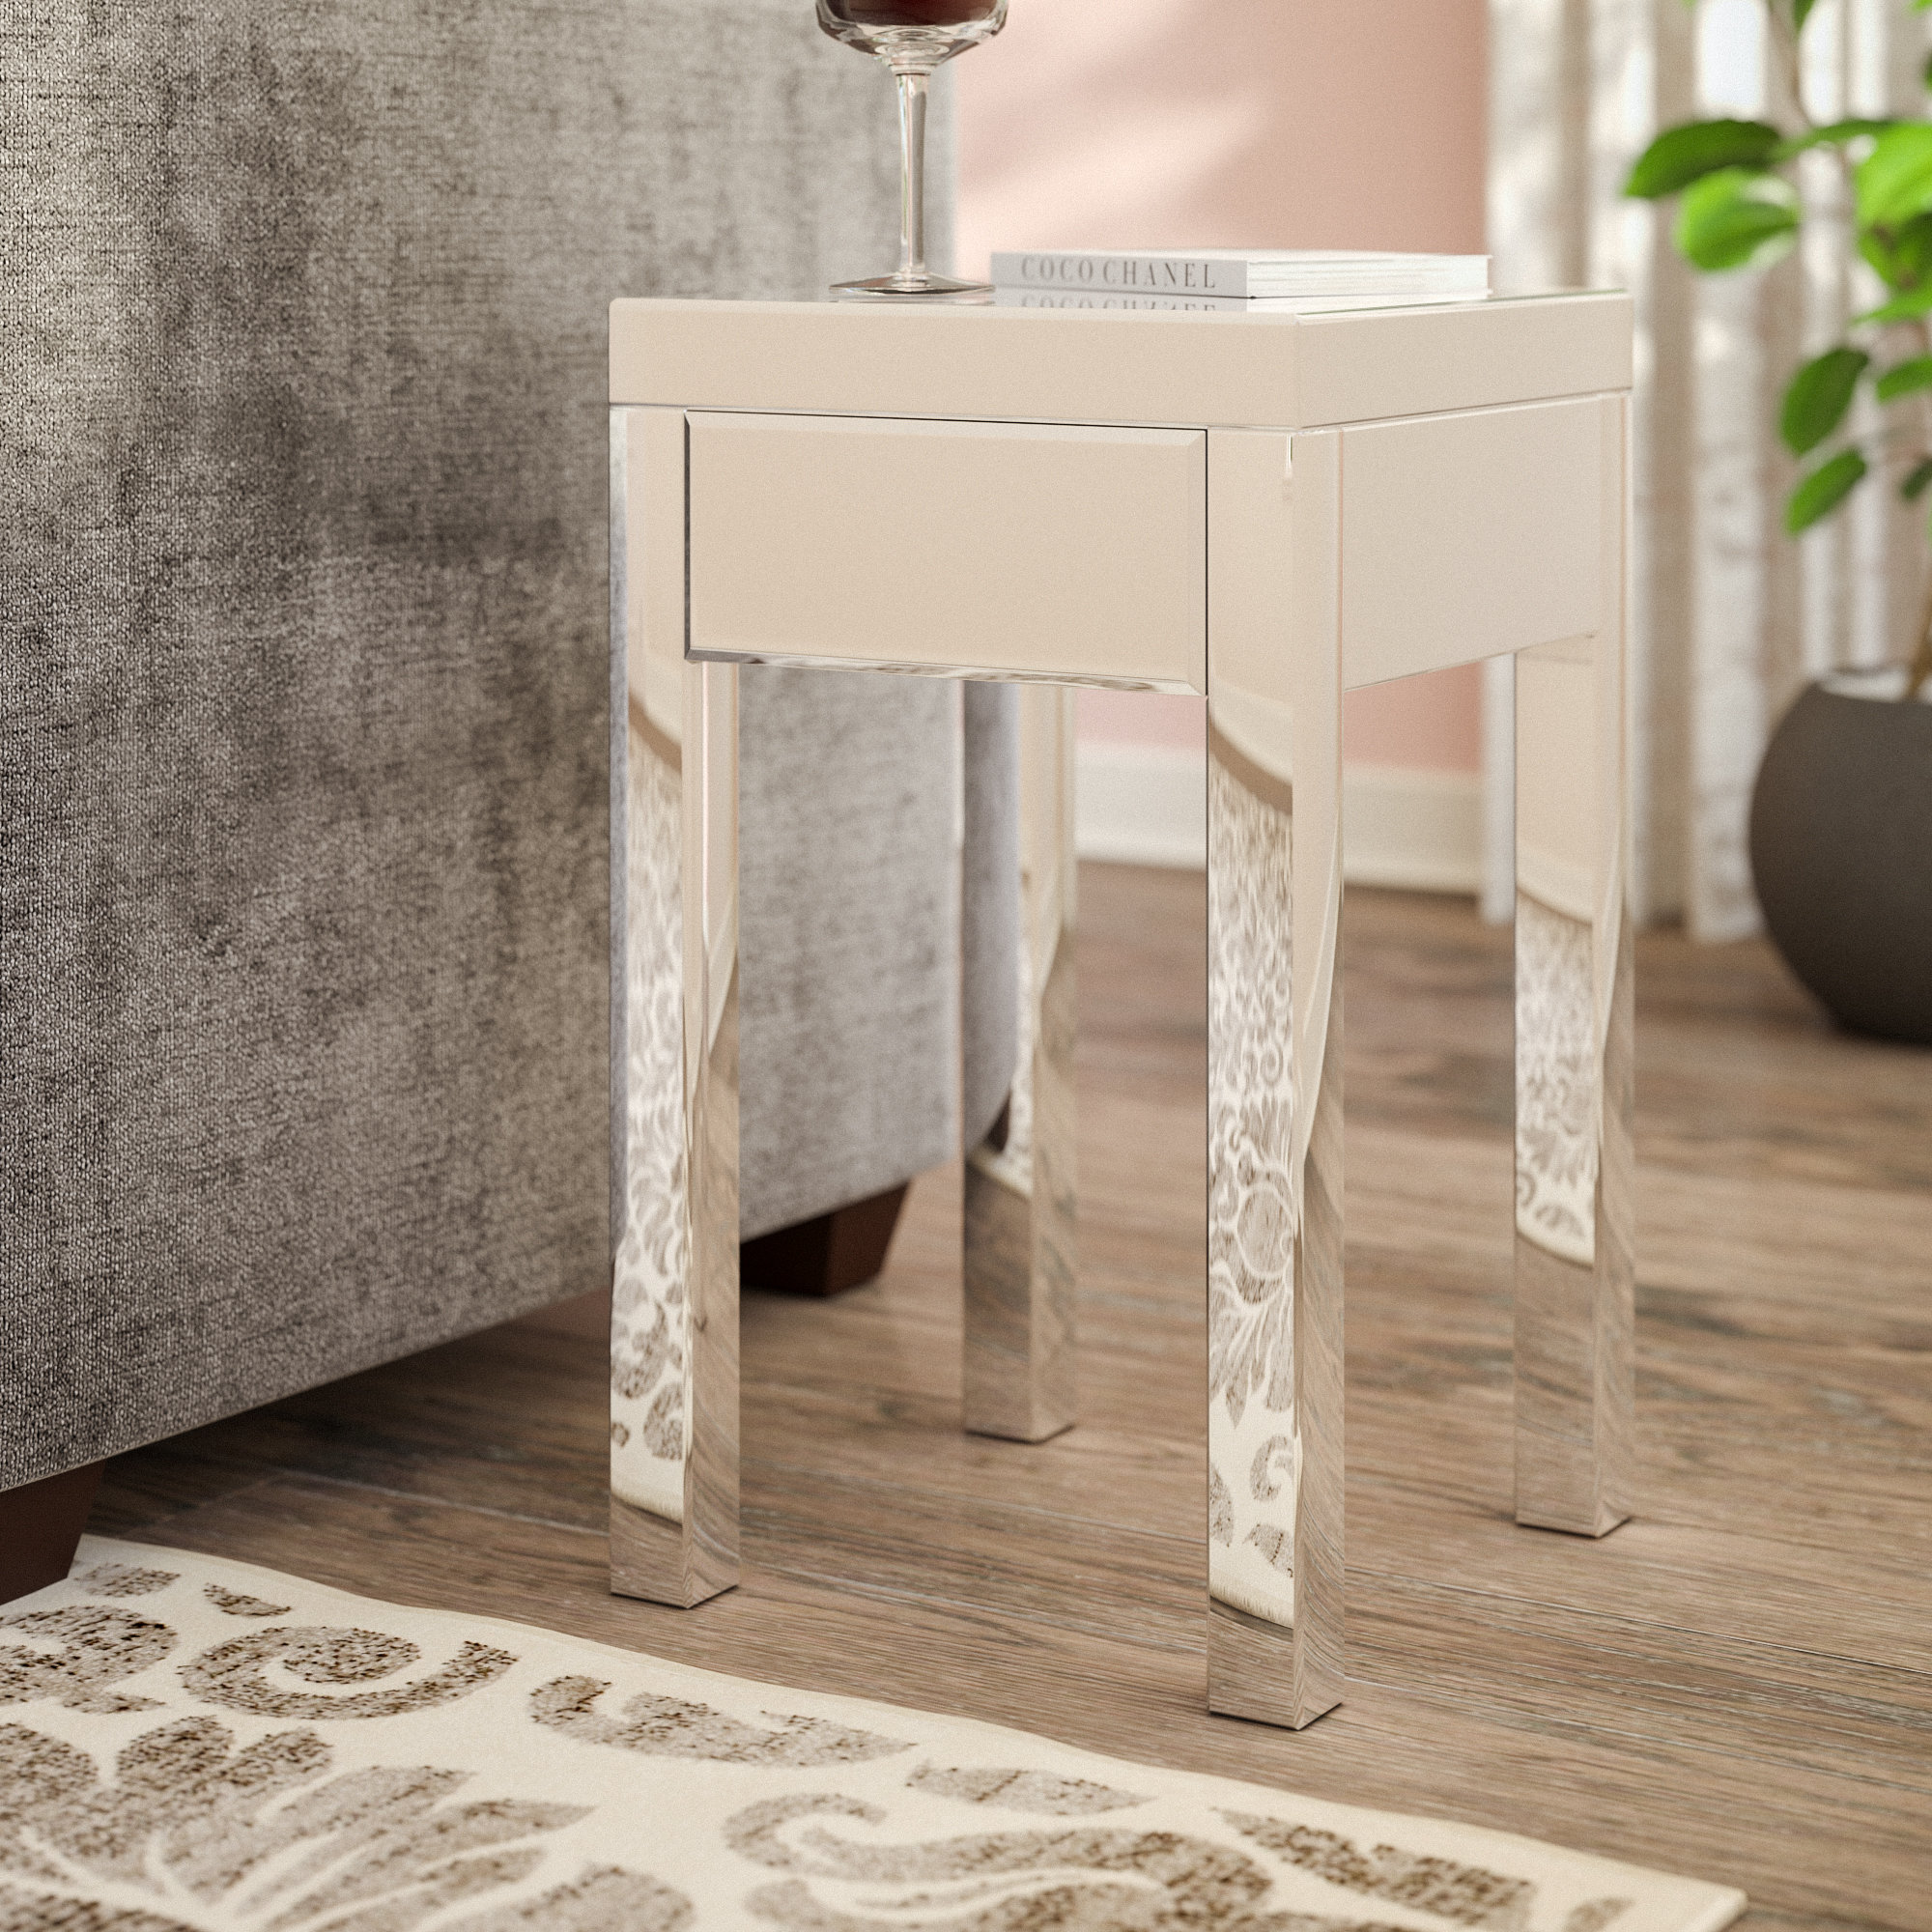 small mirrored accent table keels end with storage round drawer pottery barn pedestal marble chairs wide mirror battery powered desk lamp designer garden furniture home goods and